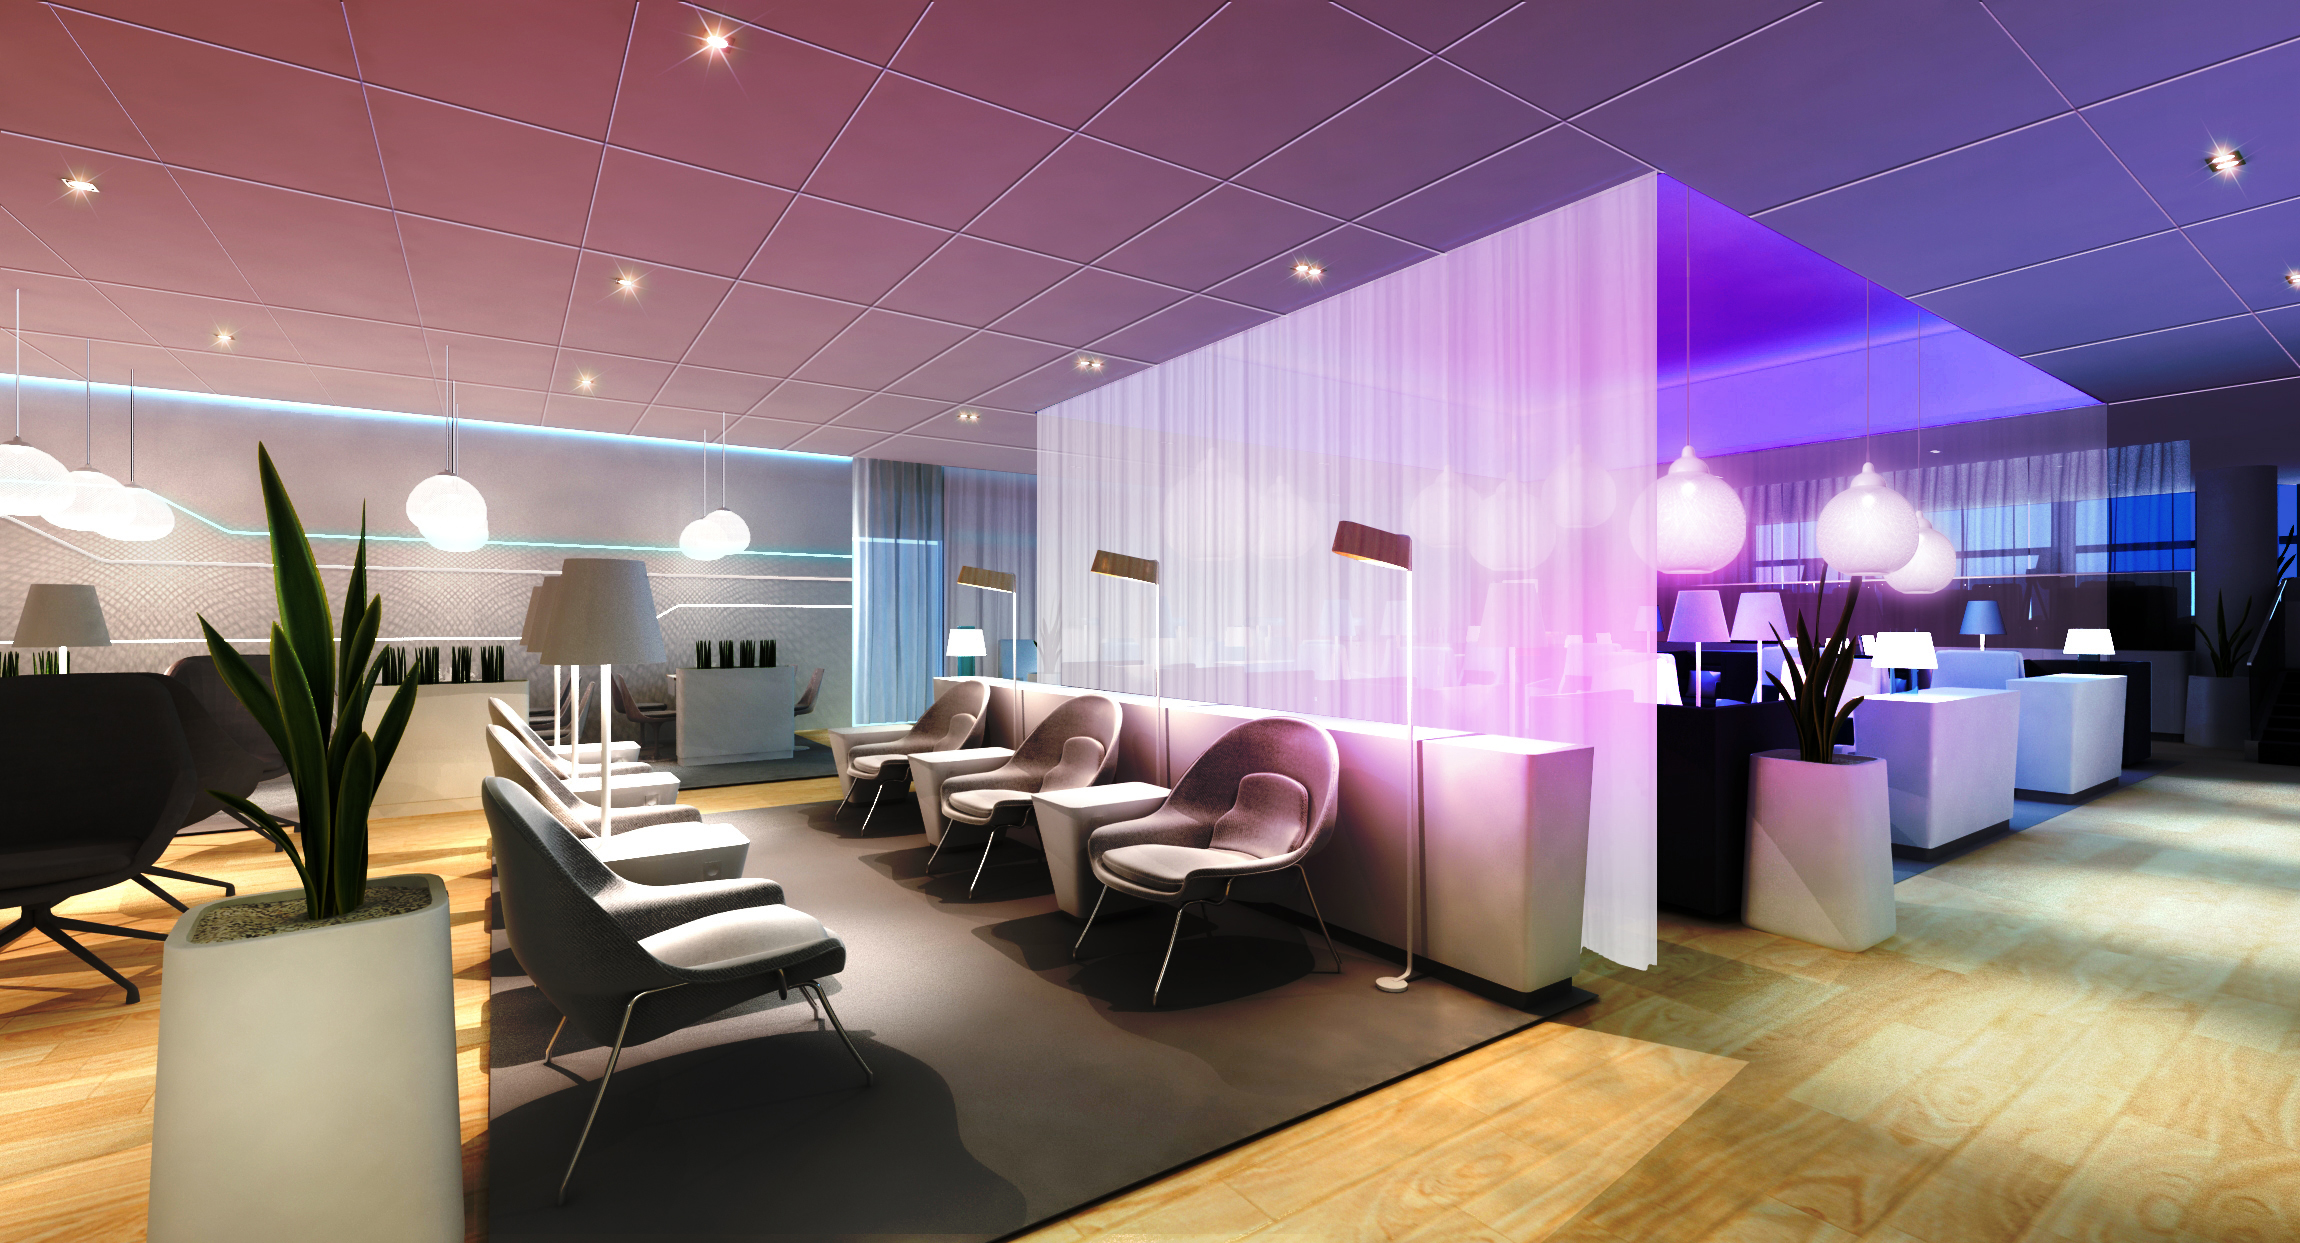 Premium Lounge With A Sauna? Has To Be Finnair | TheDesignAir